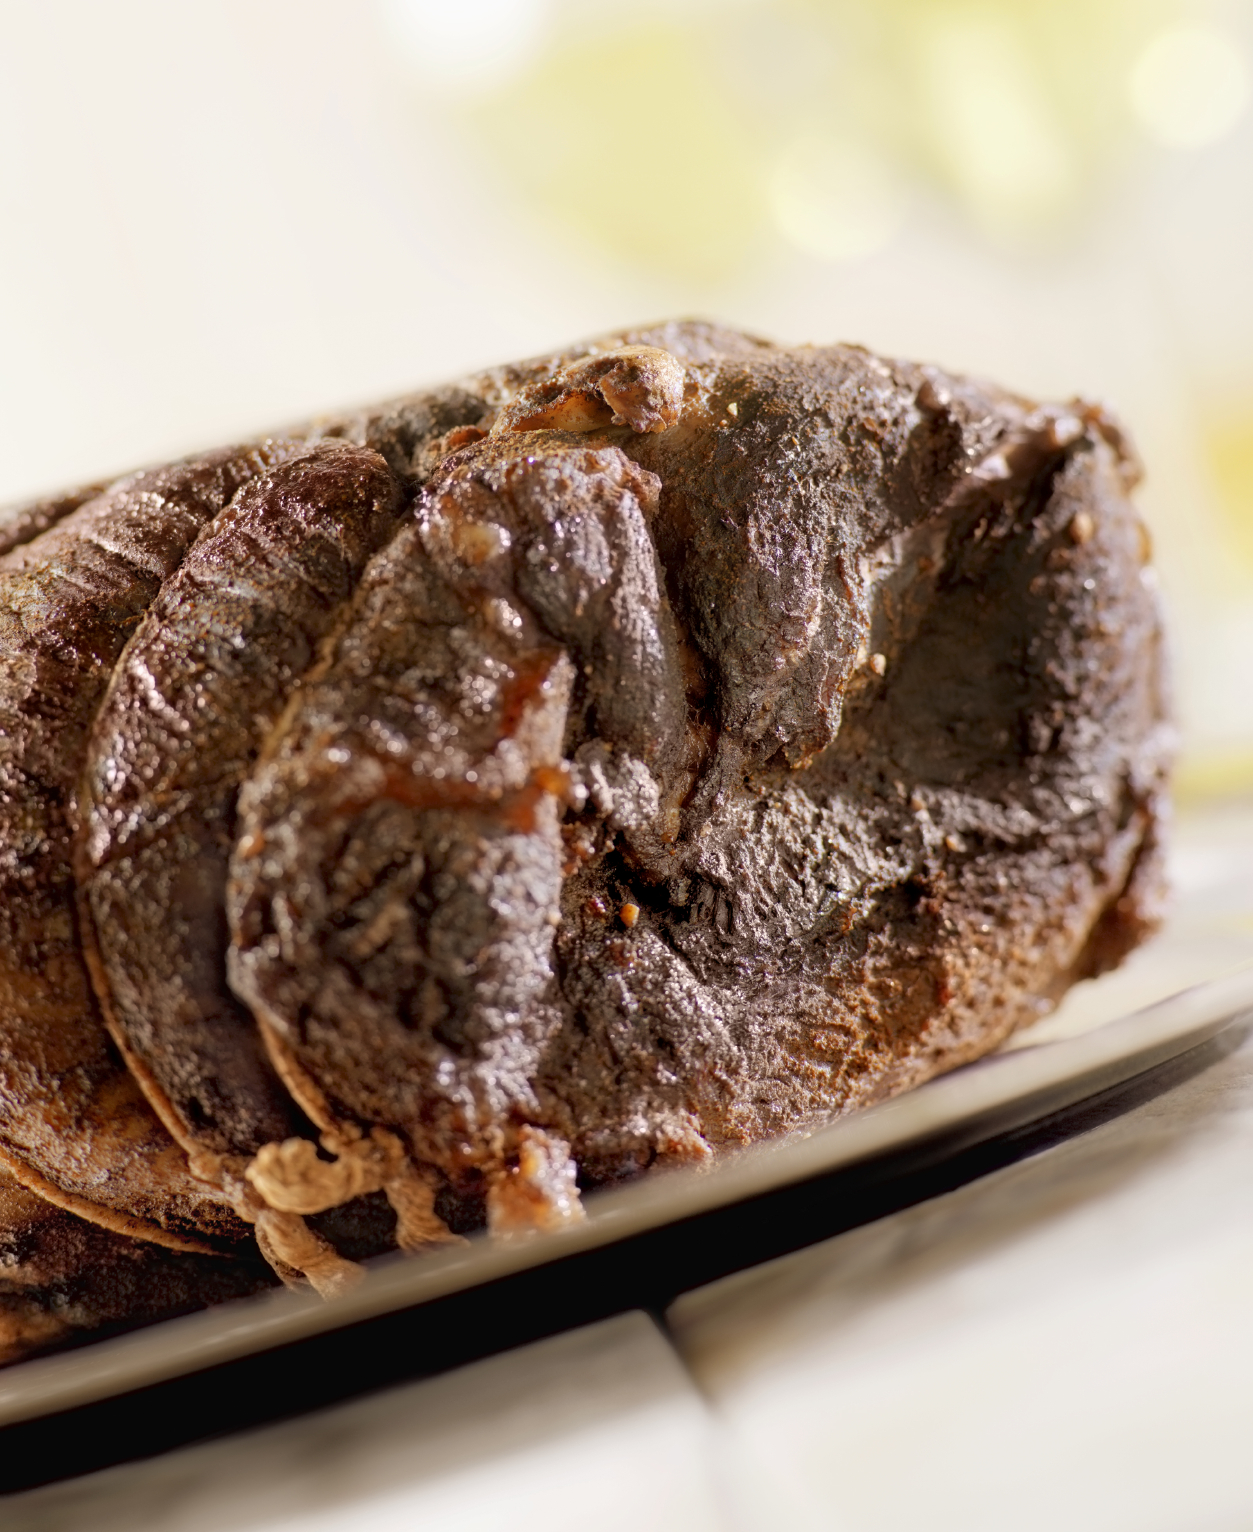 Roast beef with ginger, curry and raisins - Ċanga l-forn bil-kari, ġinġer u żbib